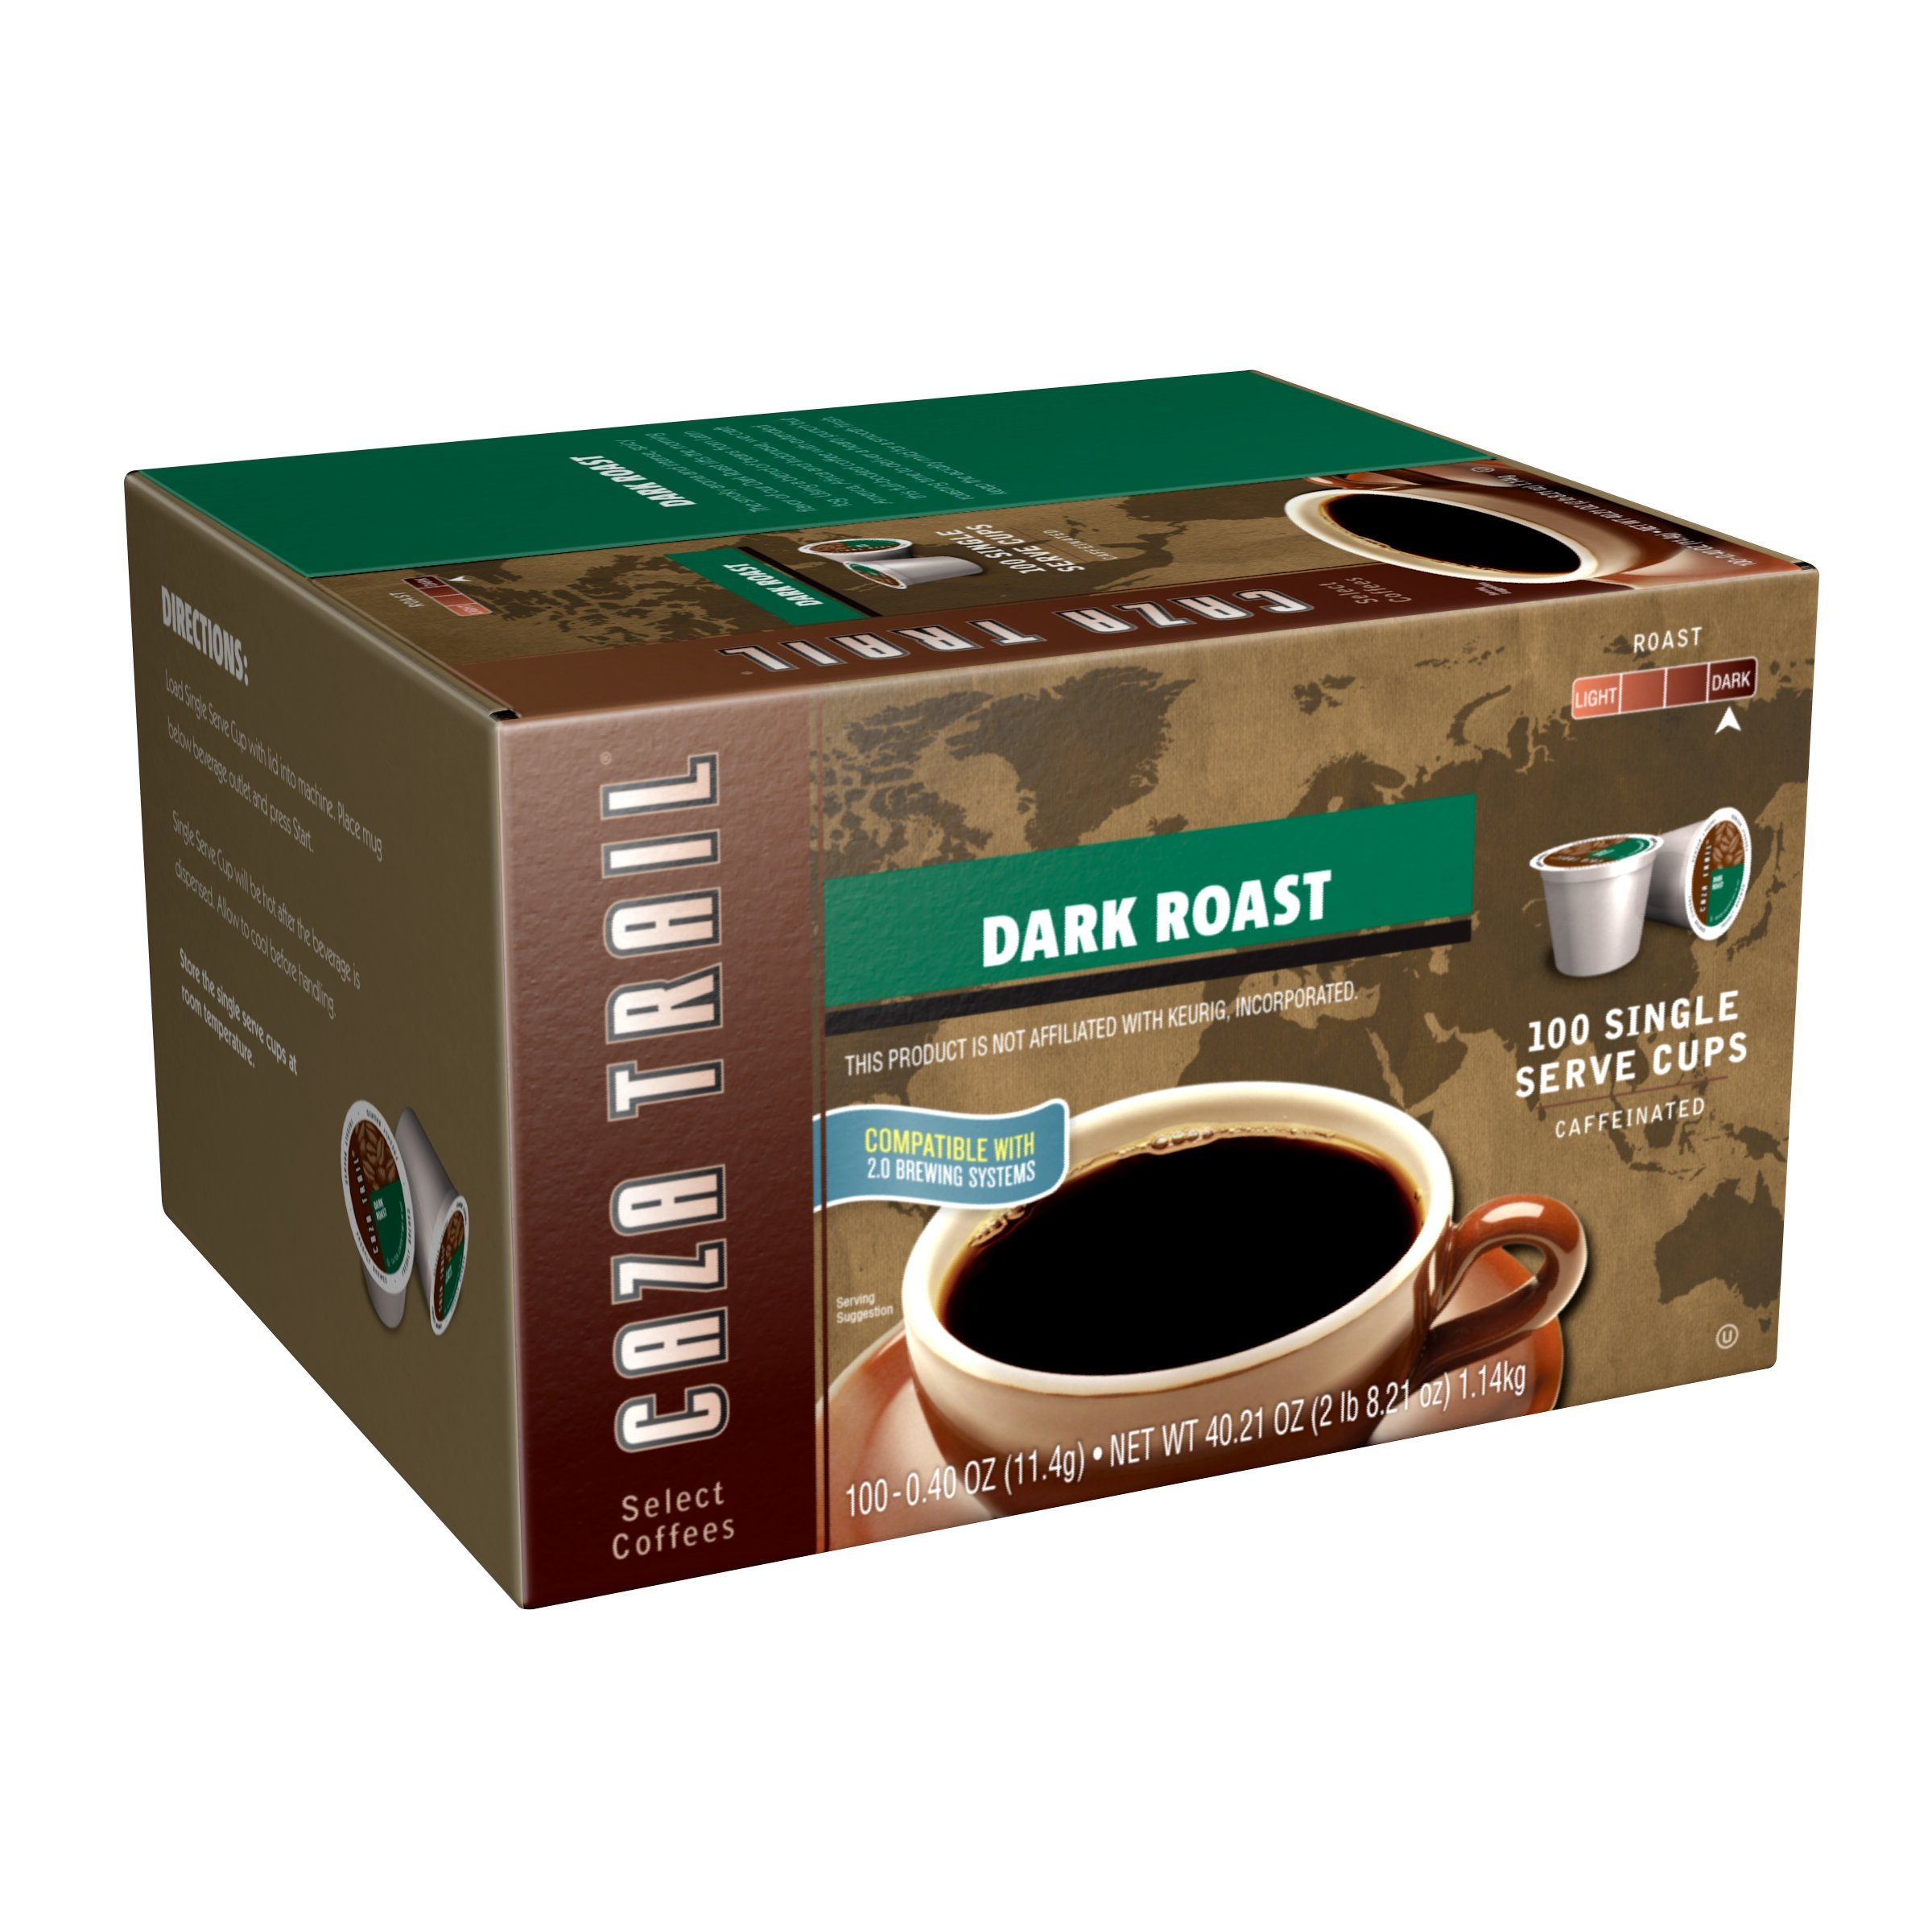 Caza Trail Coffee, Dark Roast, 100 Single Serve Cups by Caza Trail